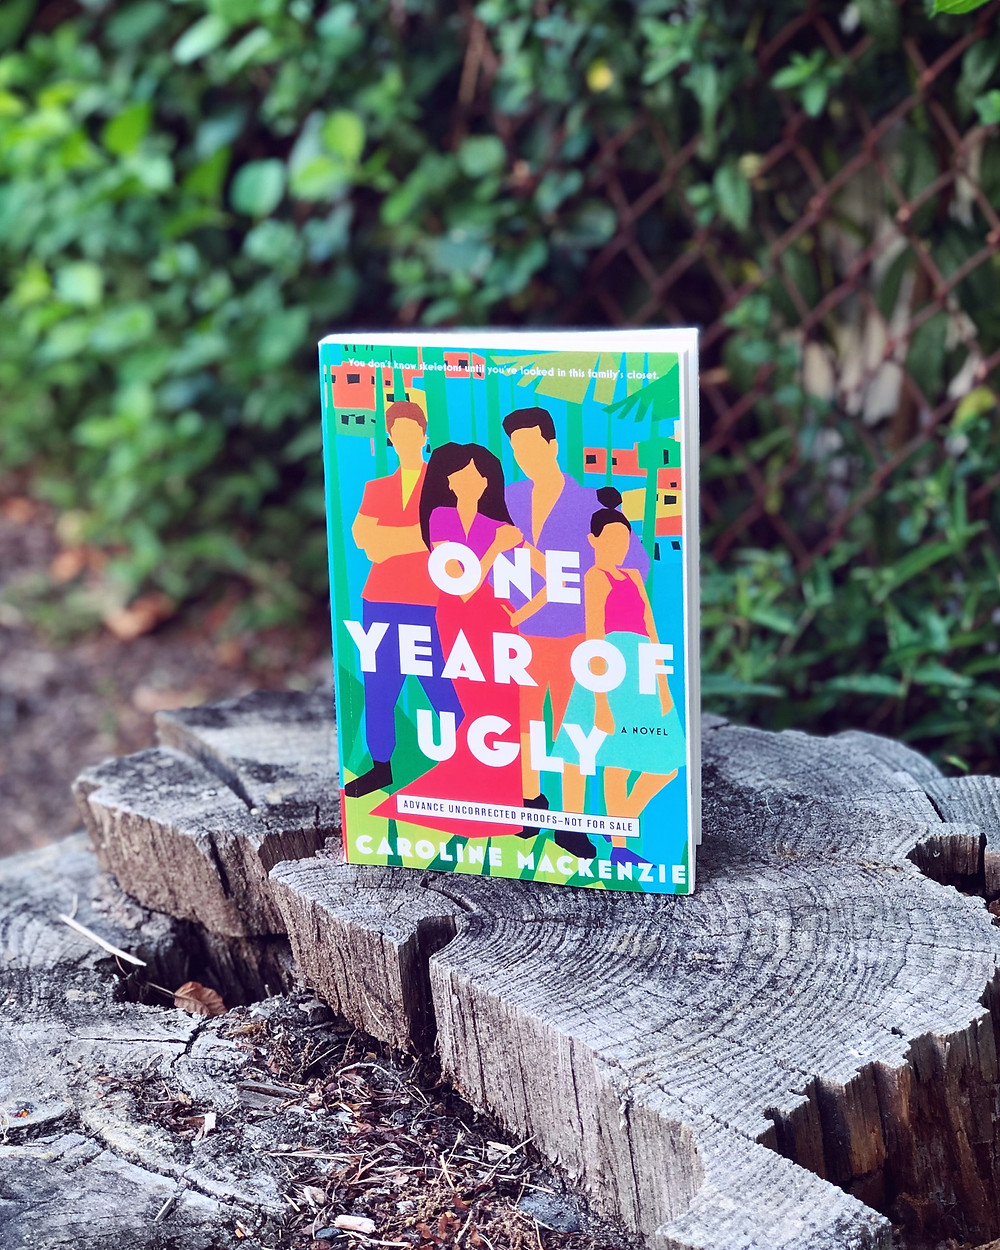 A paperback, advanced copy of One Year of Ugly stands on top of a tree trunk outside, with greenery and a fence in the background.